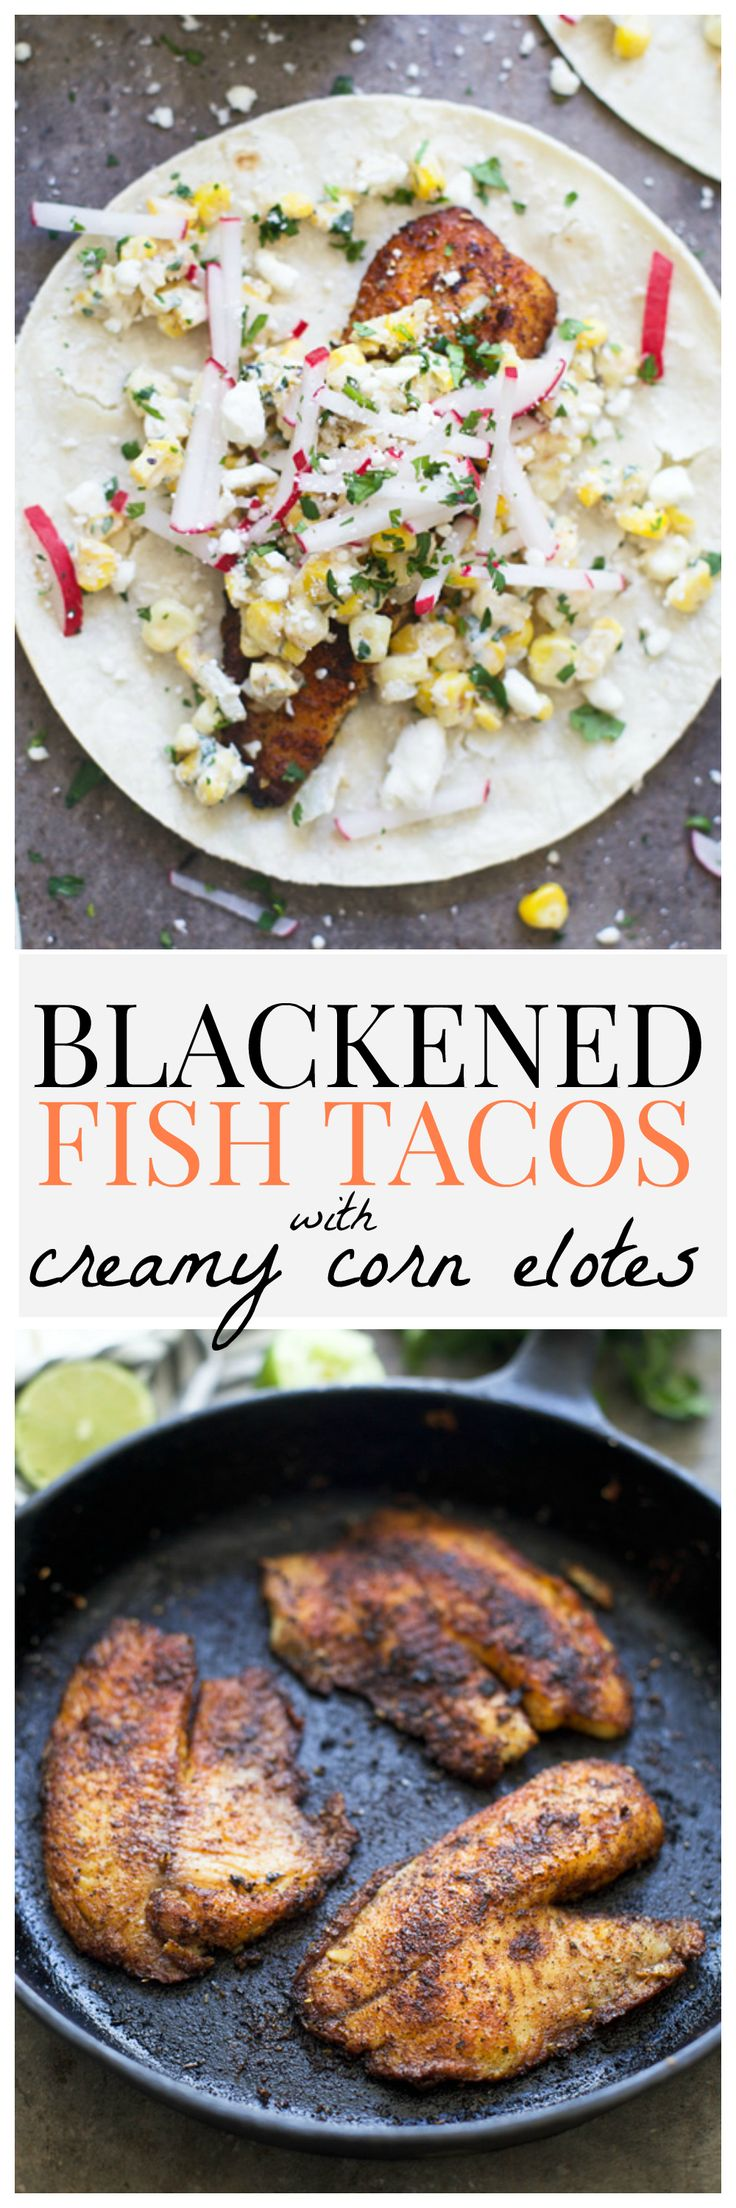 With Cinco de Mayo only a week away, it's time to start thinking about what you're going to eat! These Blackened Tilapia Tacos with Corn Elotes are easy, healthy and the perfect addition to your menu! Like a majority of the country, my love for Mexican fo http://amzn.to/2pfvyHP